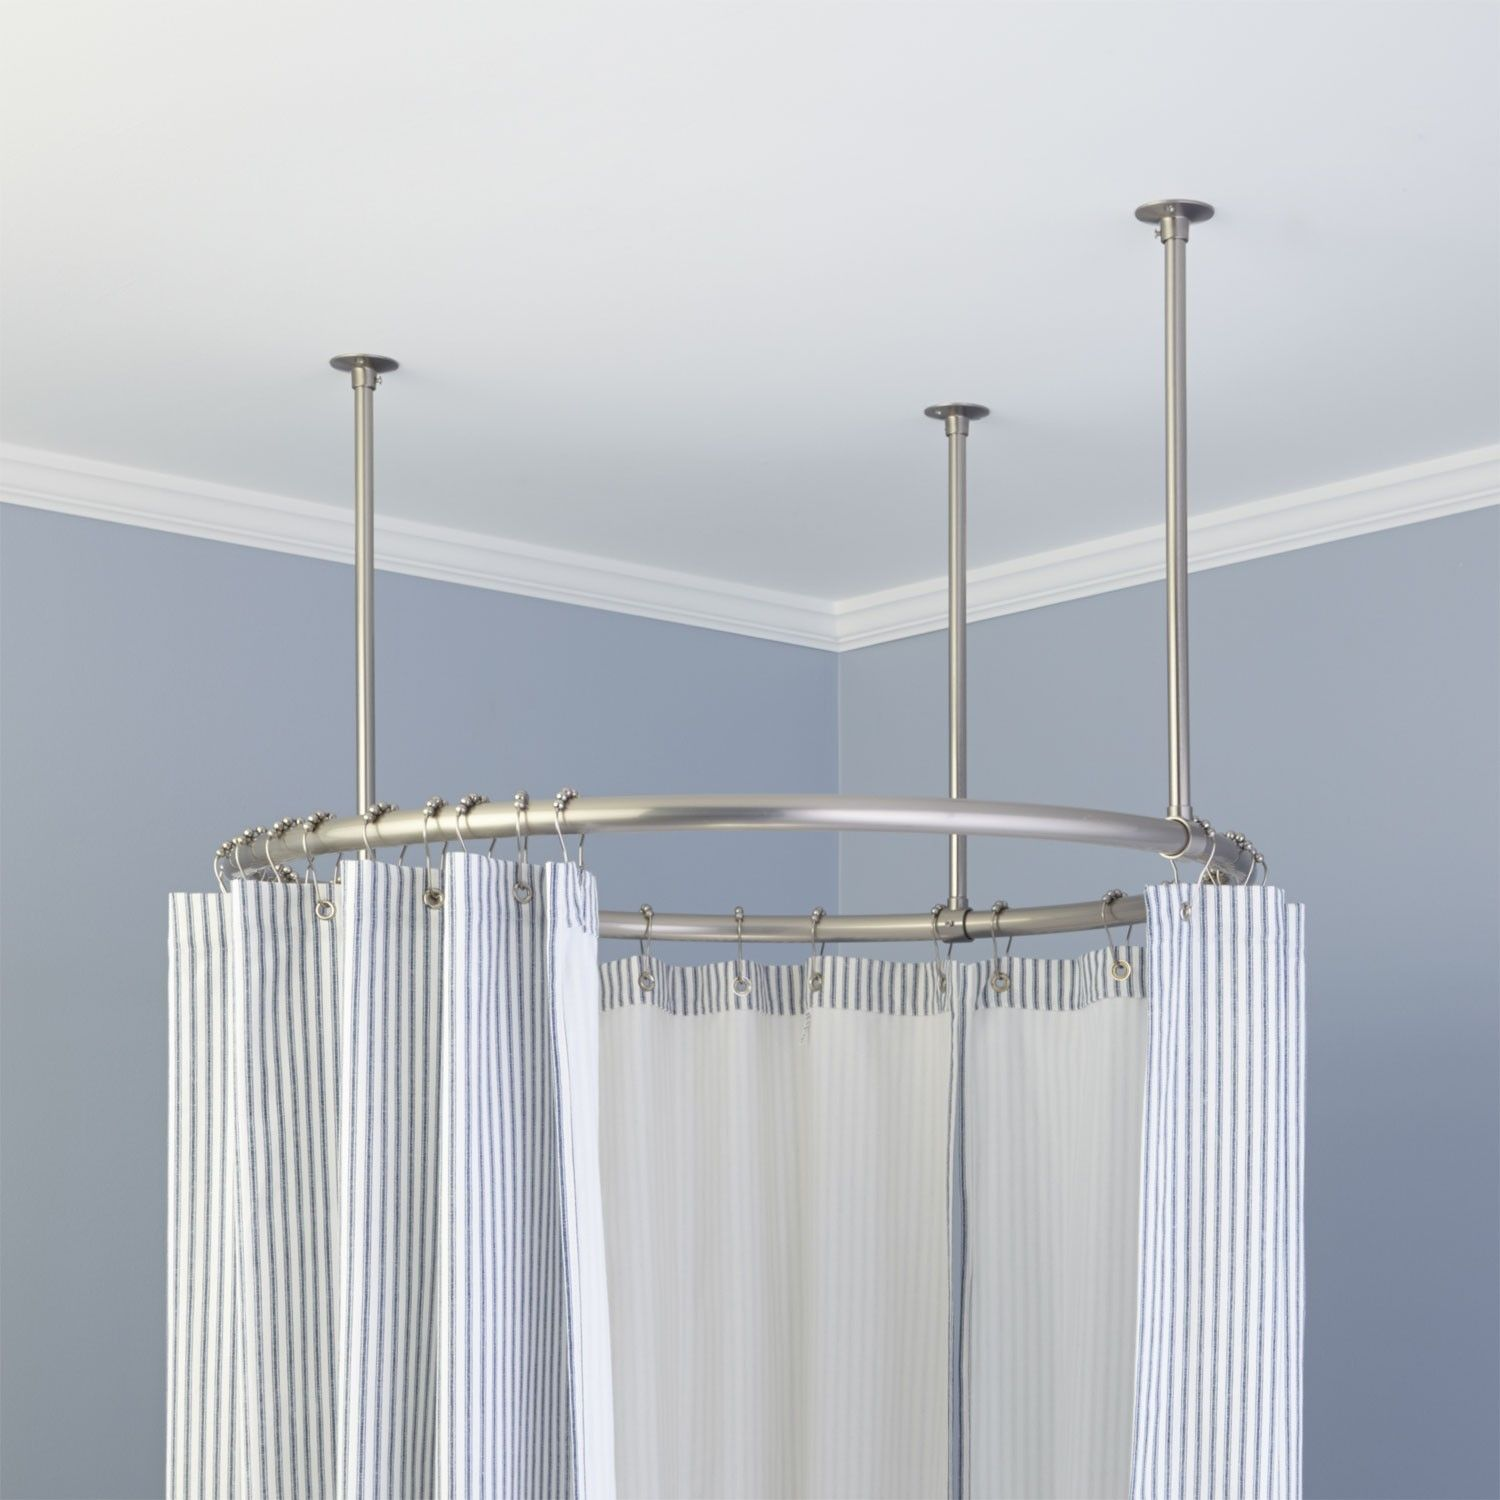 Oval Shower Curtain Rod For Clawfoot Tub Decor 3909 In Sizing 1280